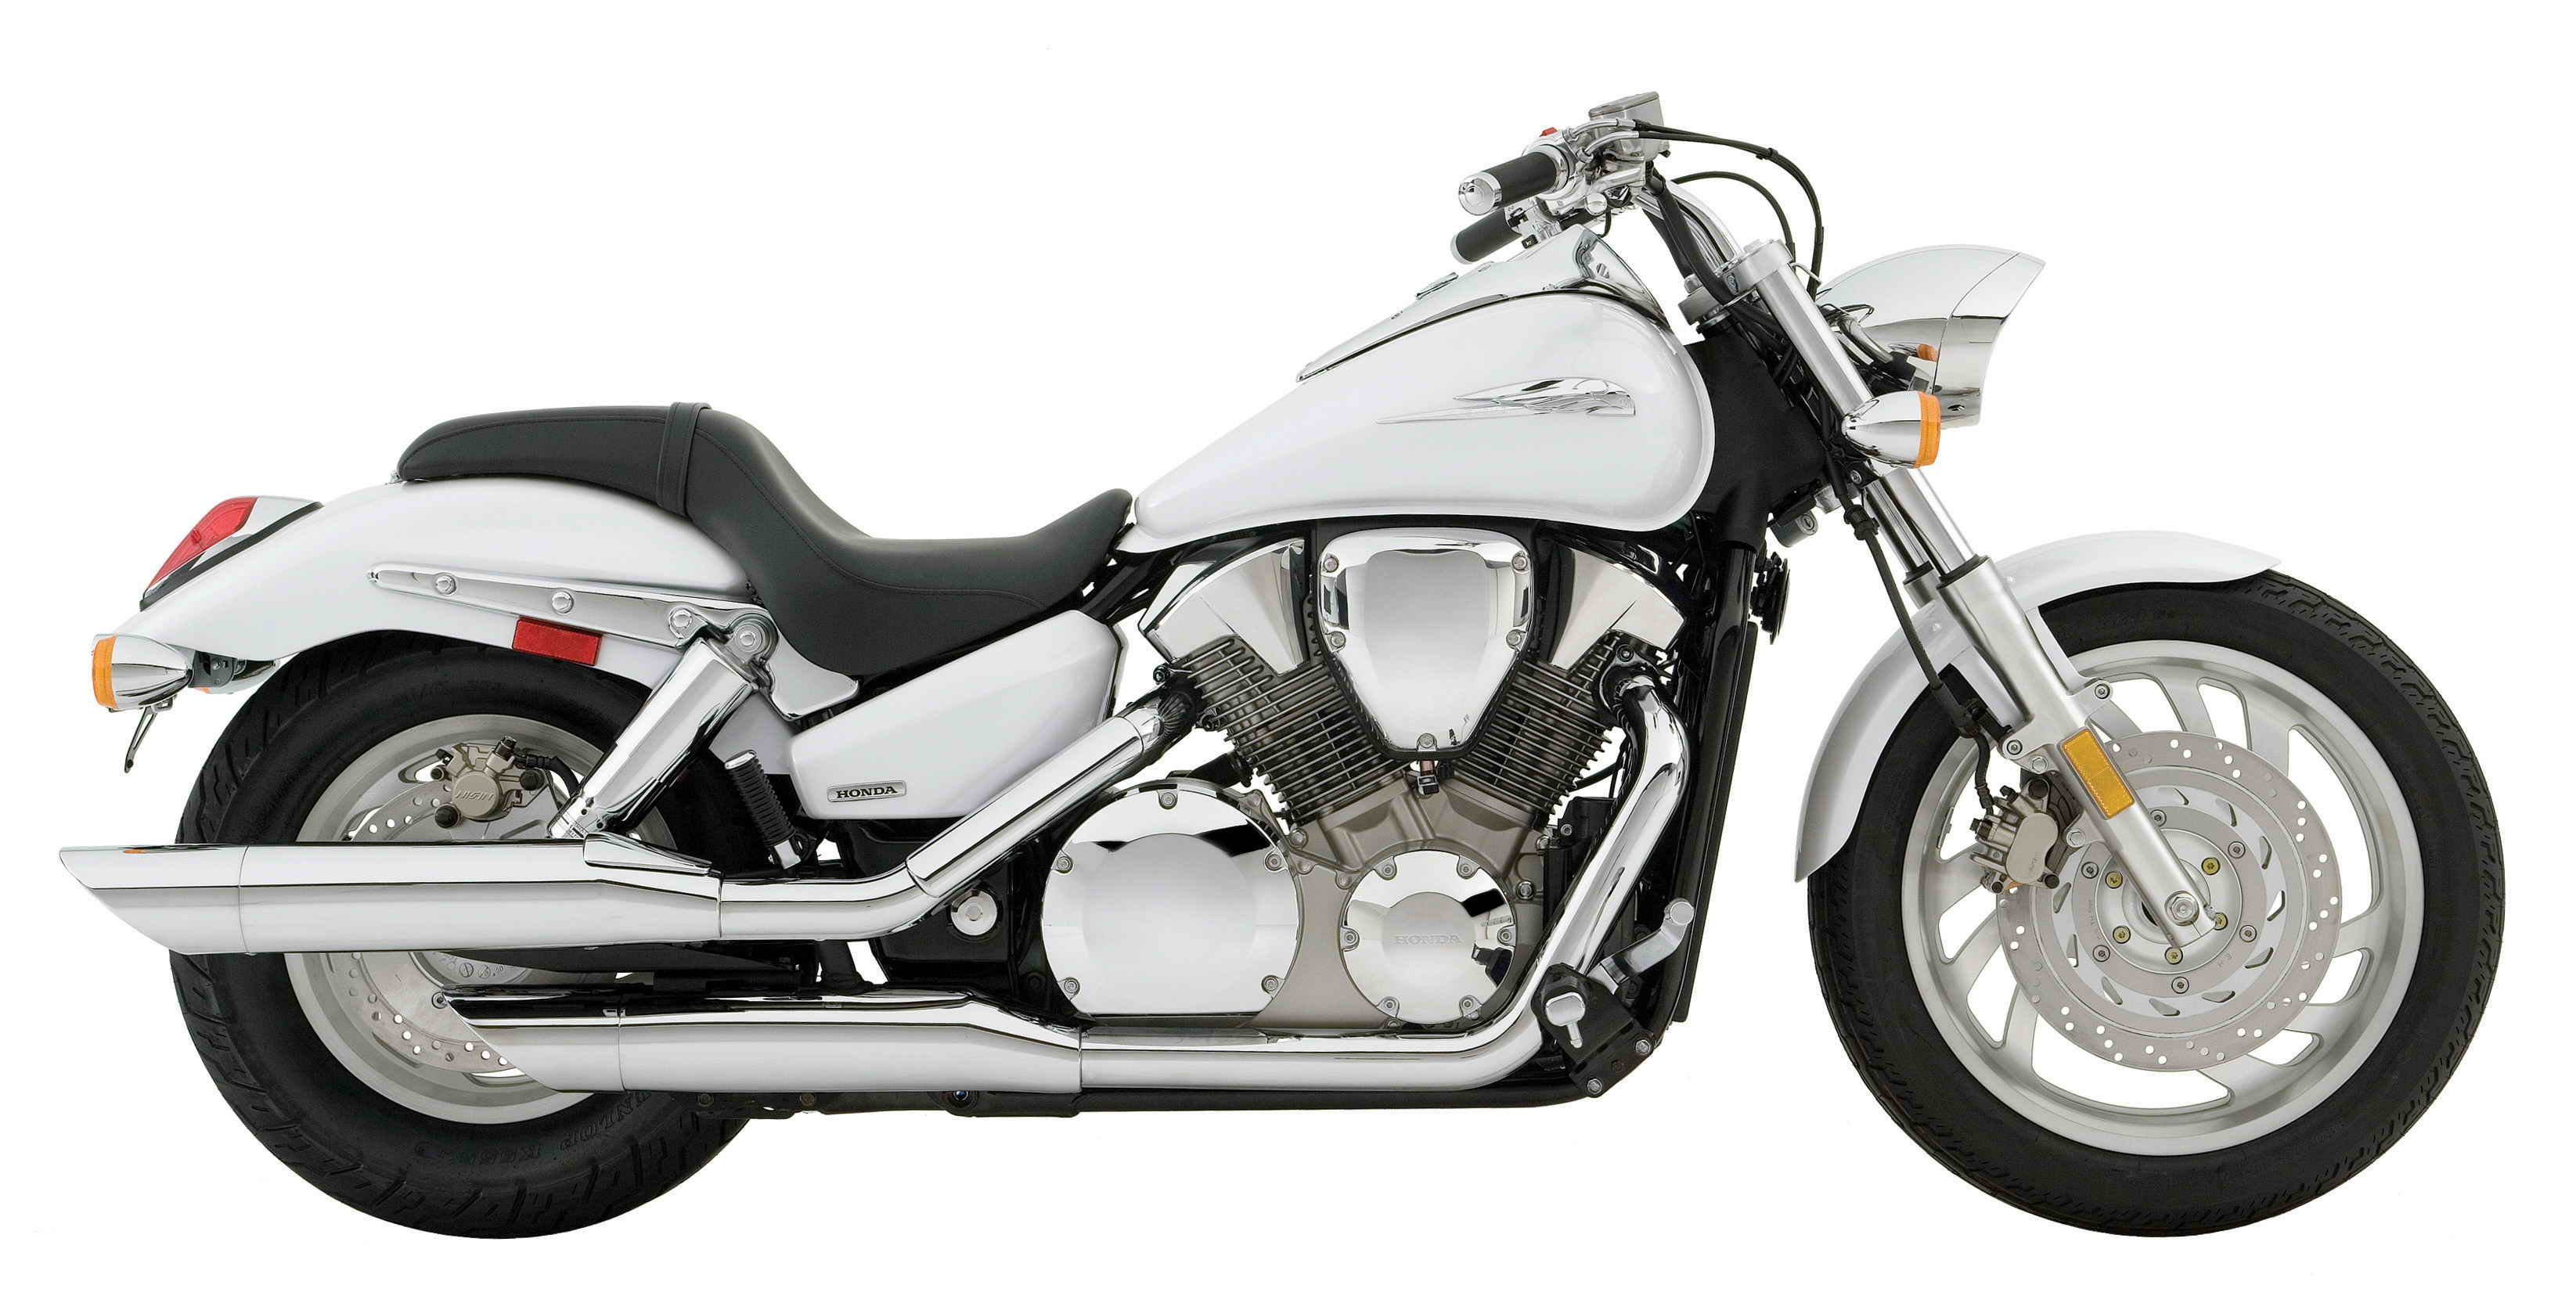 2007 Honda VTX1300 | Top Speed